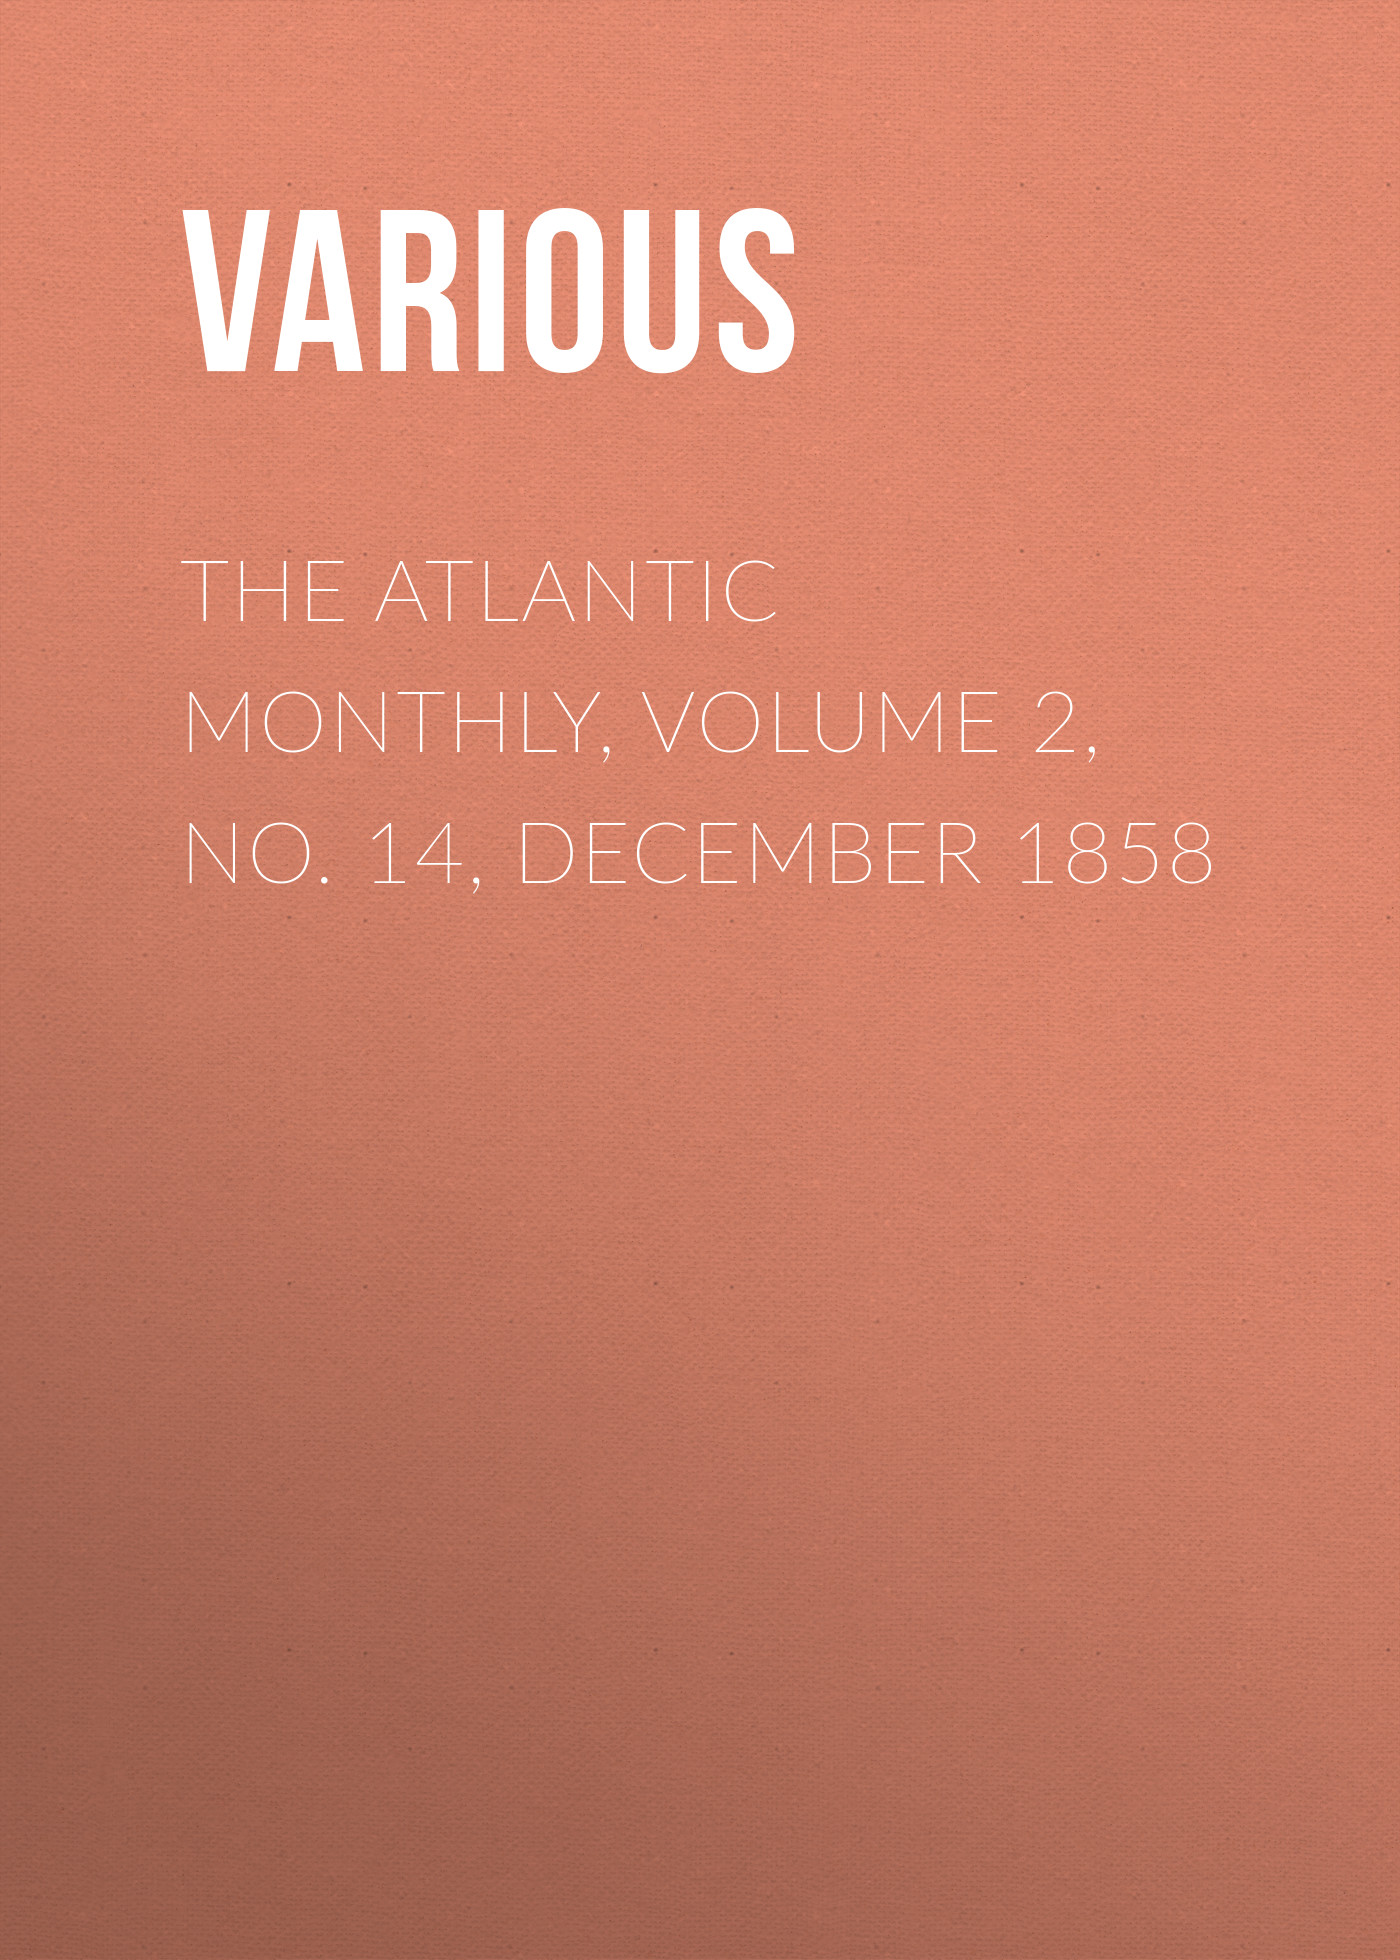 Various The Atlantic Monthly, Volume 2, No. 14, December 1858 various the atlantic monthly volume 02 no 10 august 1858